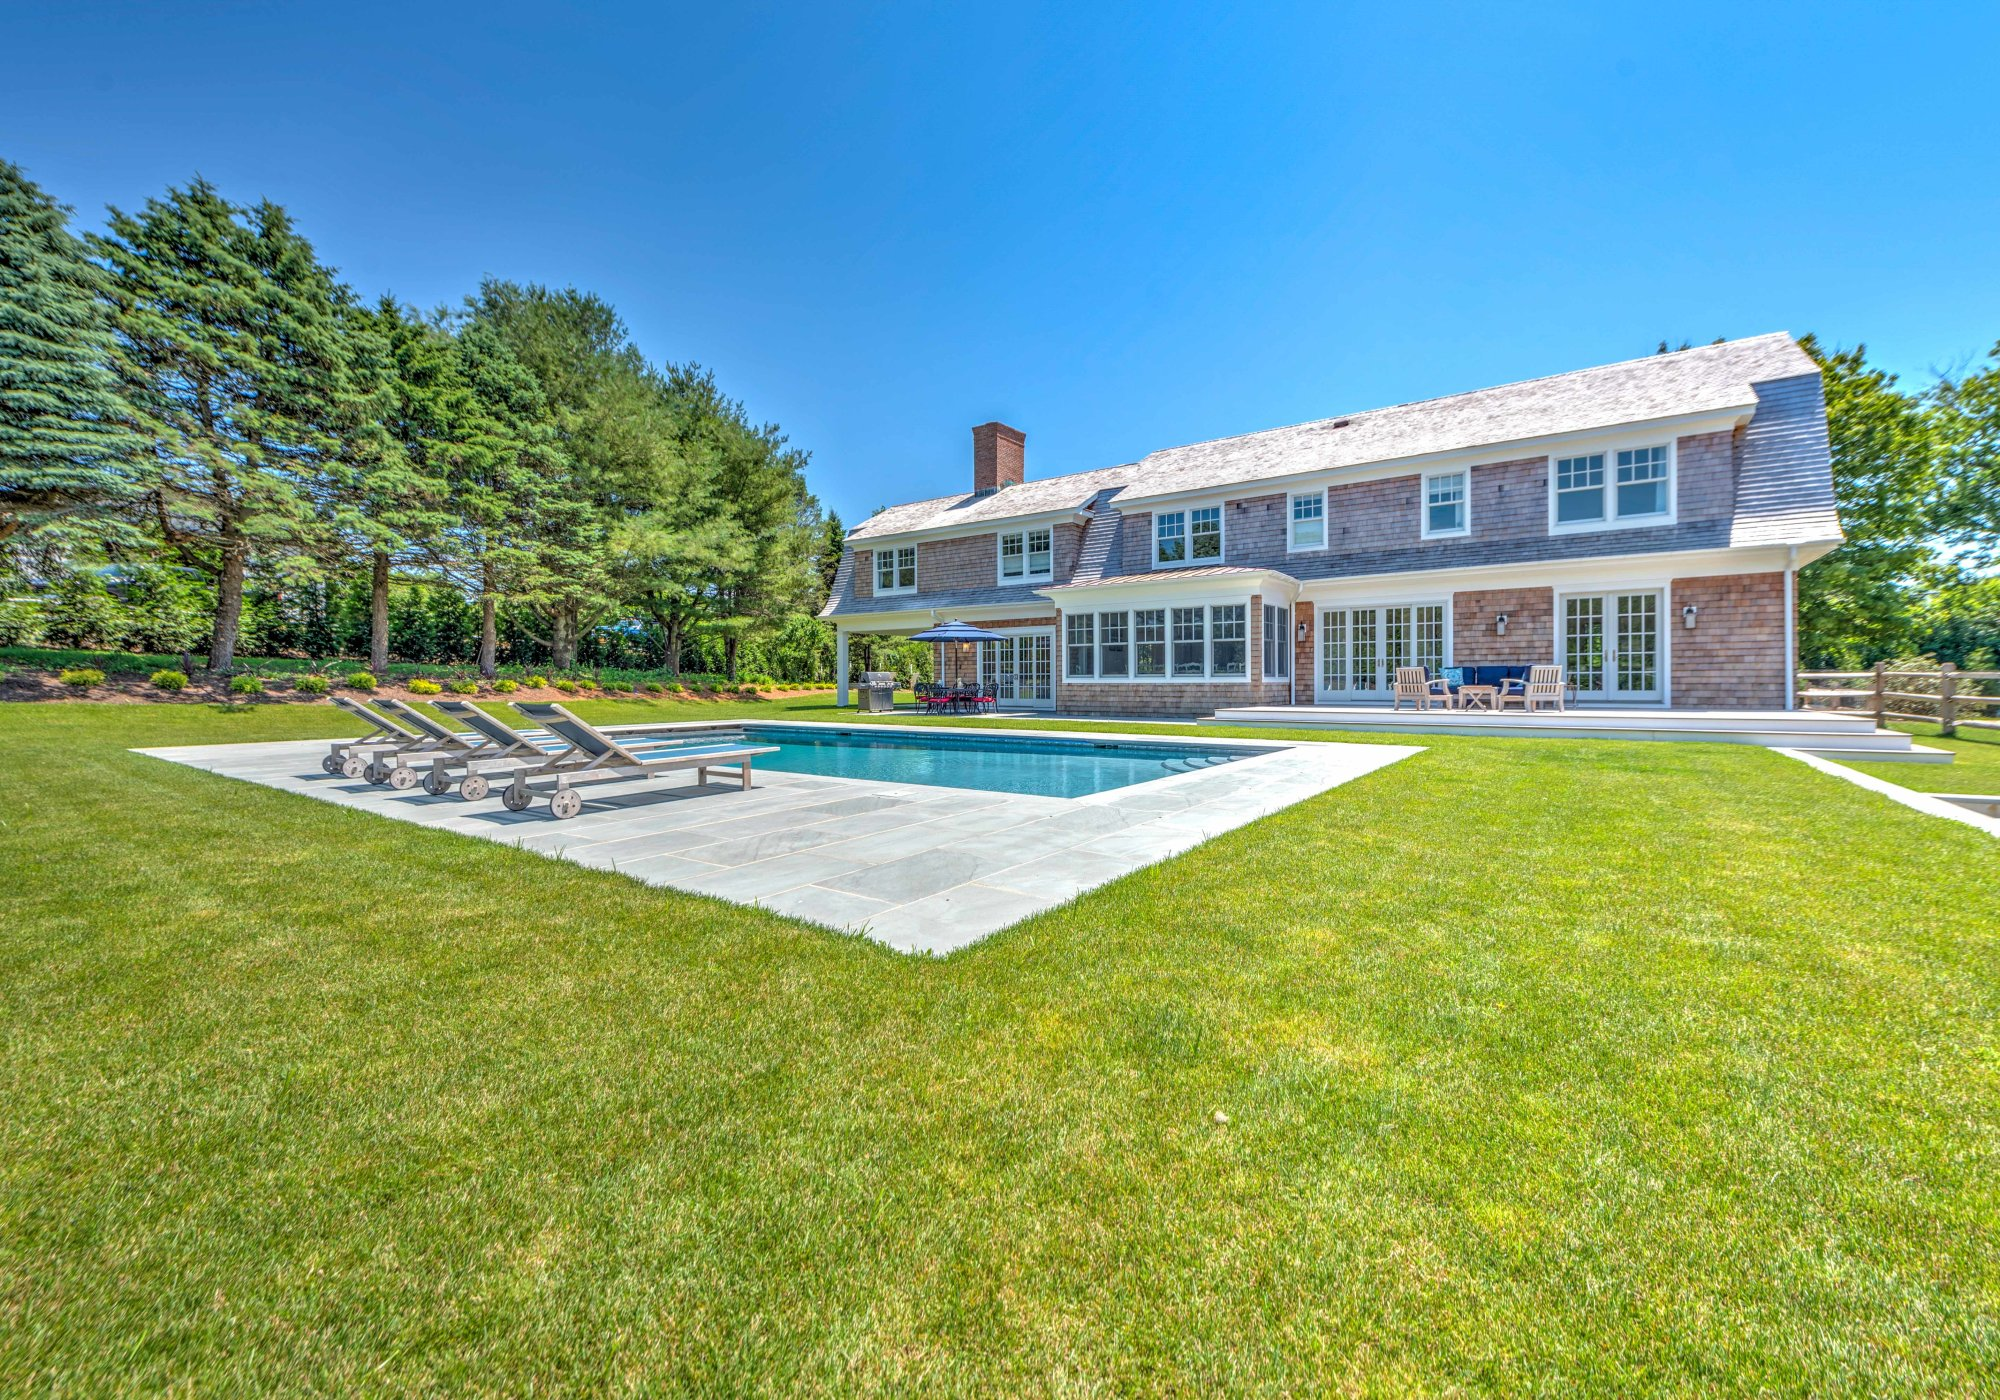 The Sagaponack Estate